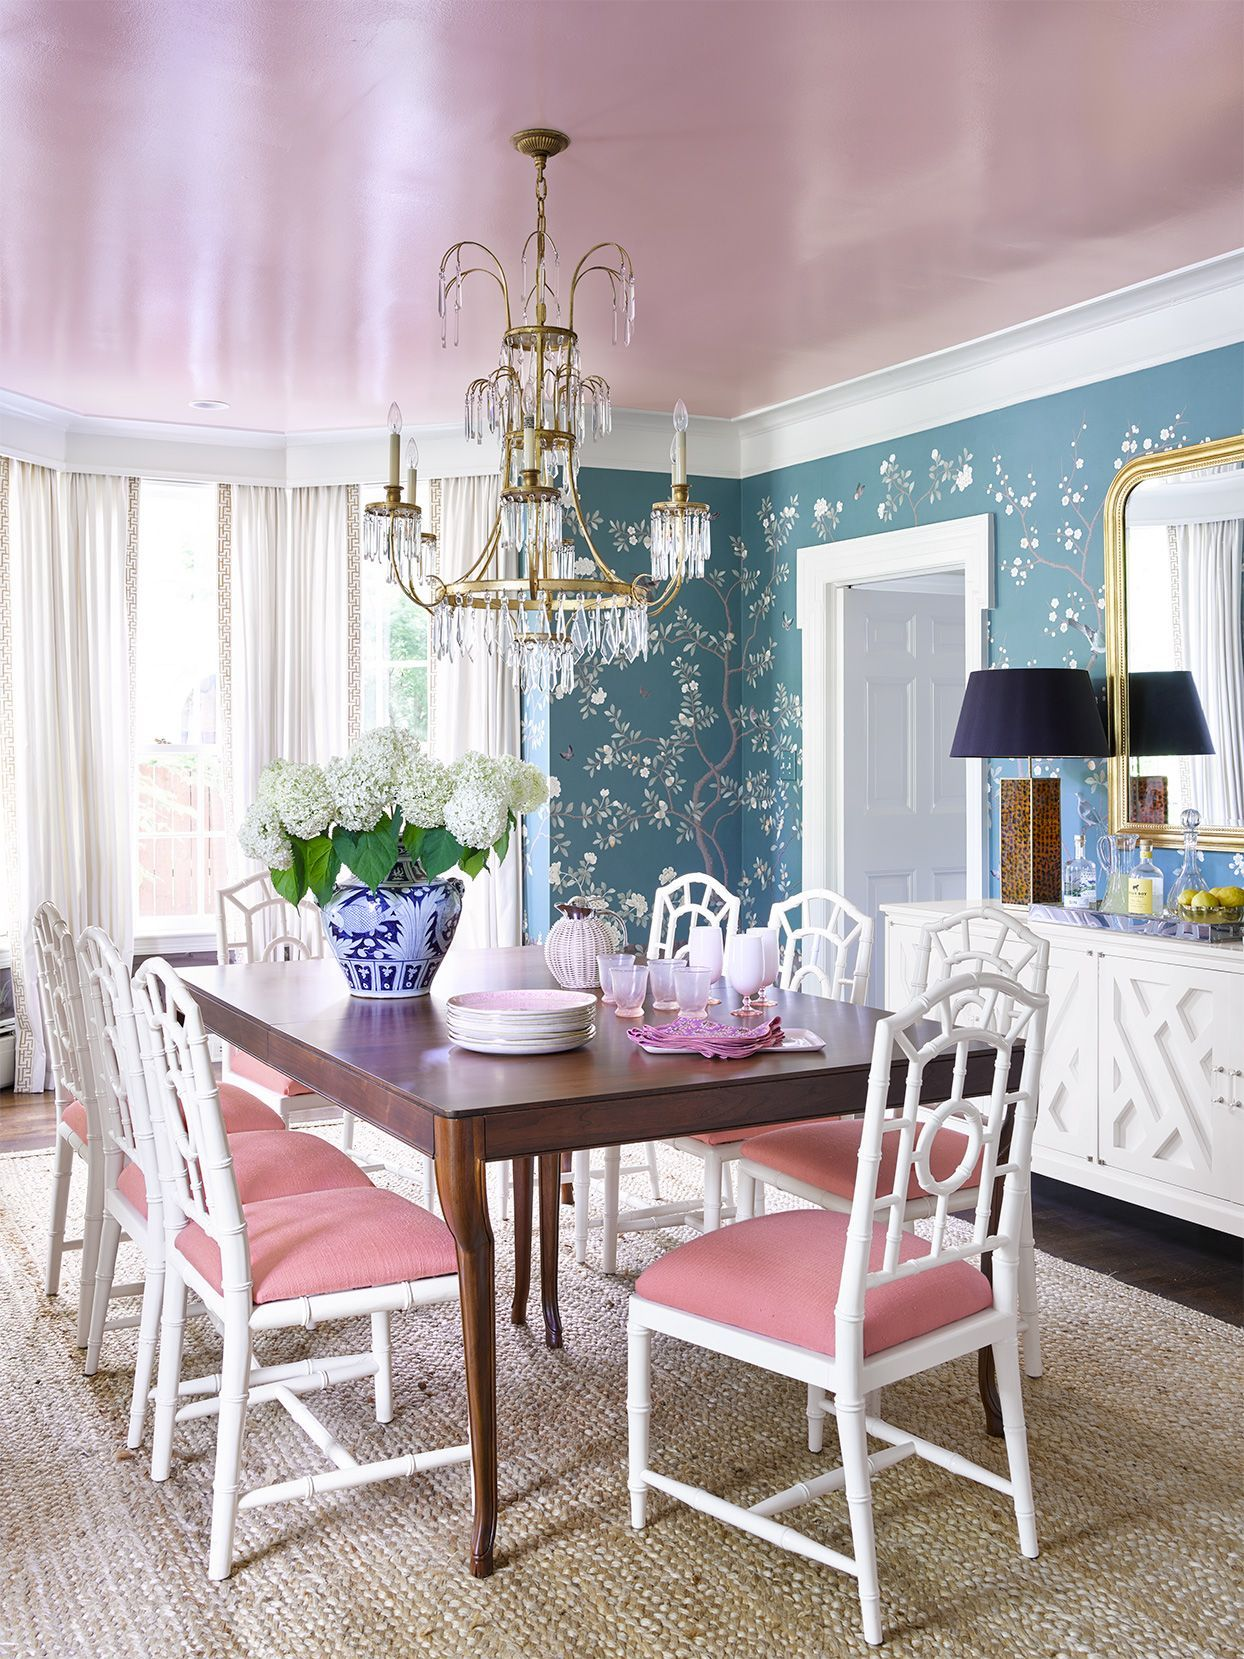 23 Brilliant Blue Color Schemes For Every Design Style In 2020 Home Wooden Table And Chairs Blue Color Schemes